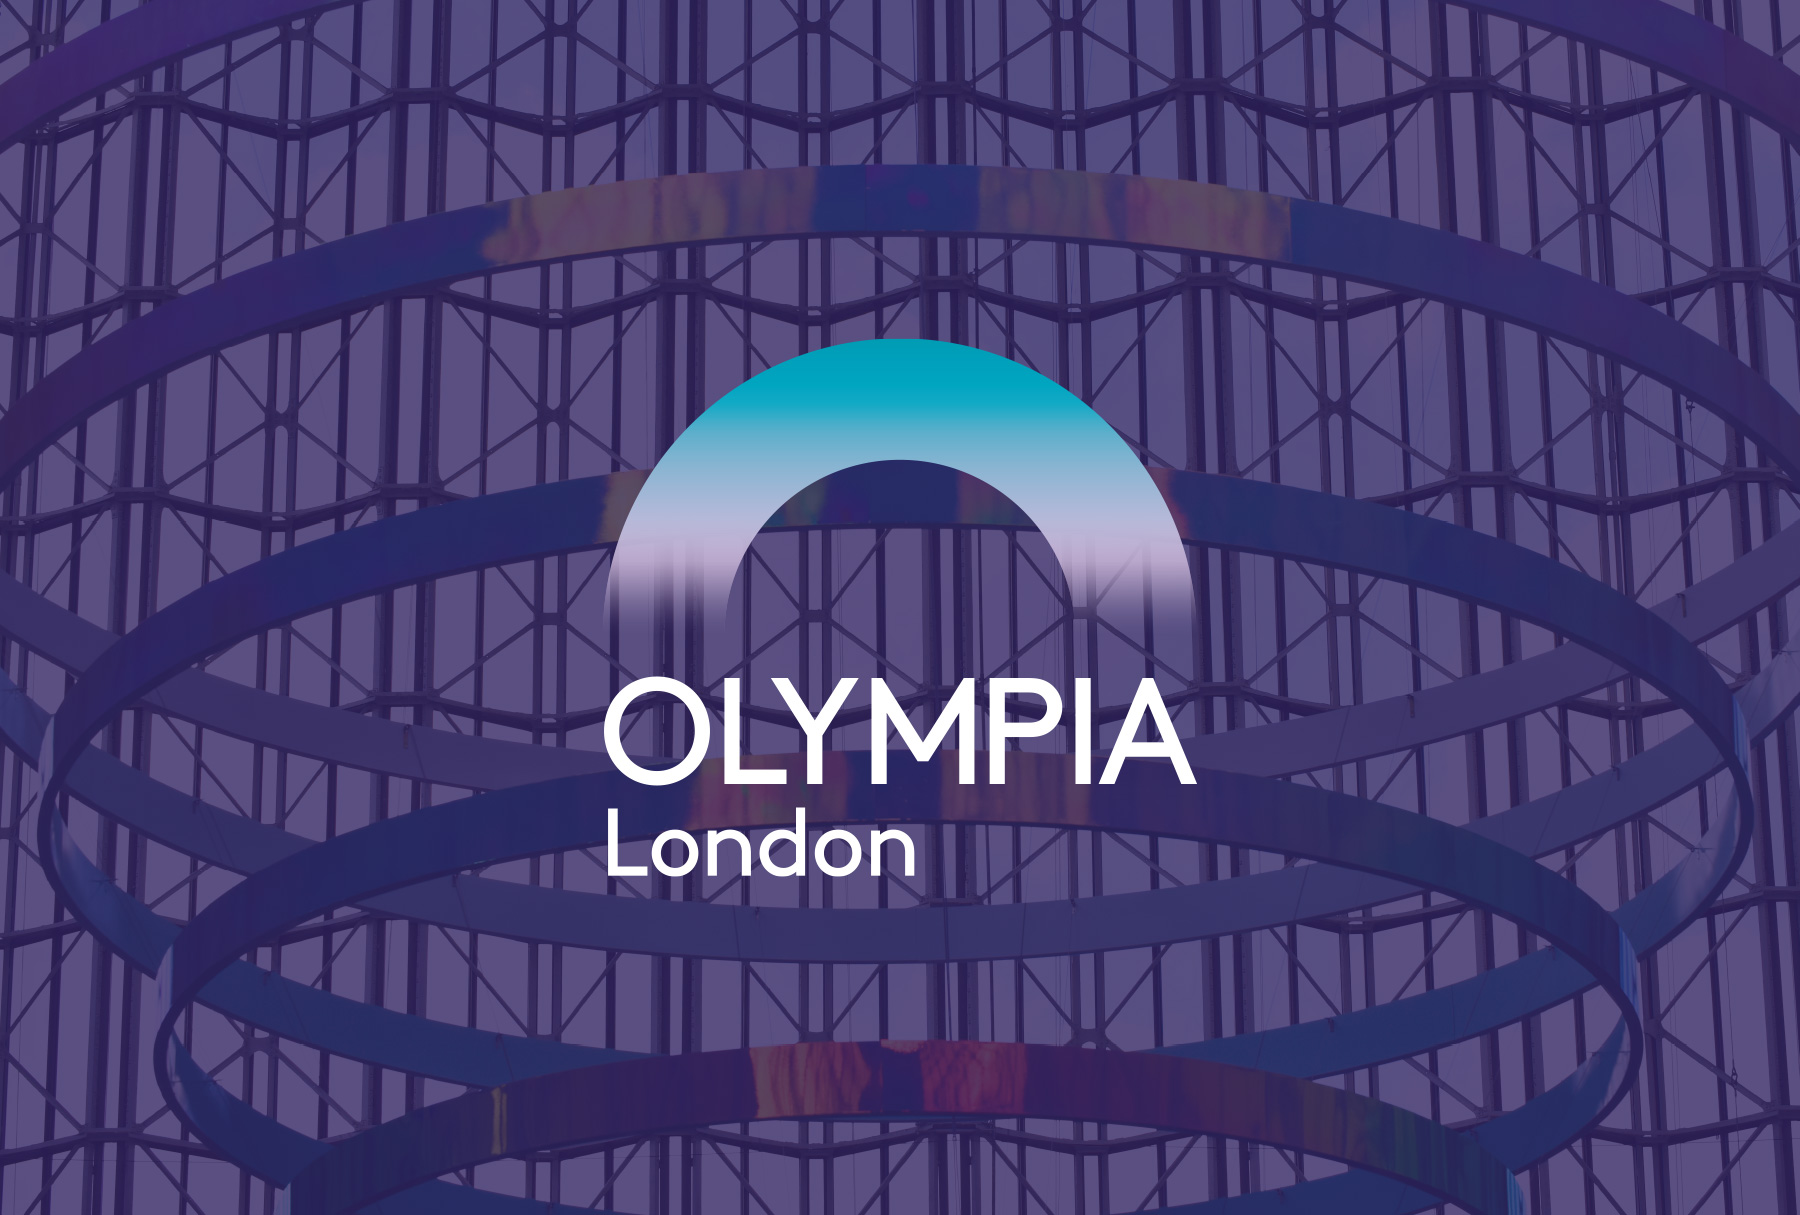 branding for Olympia London